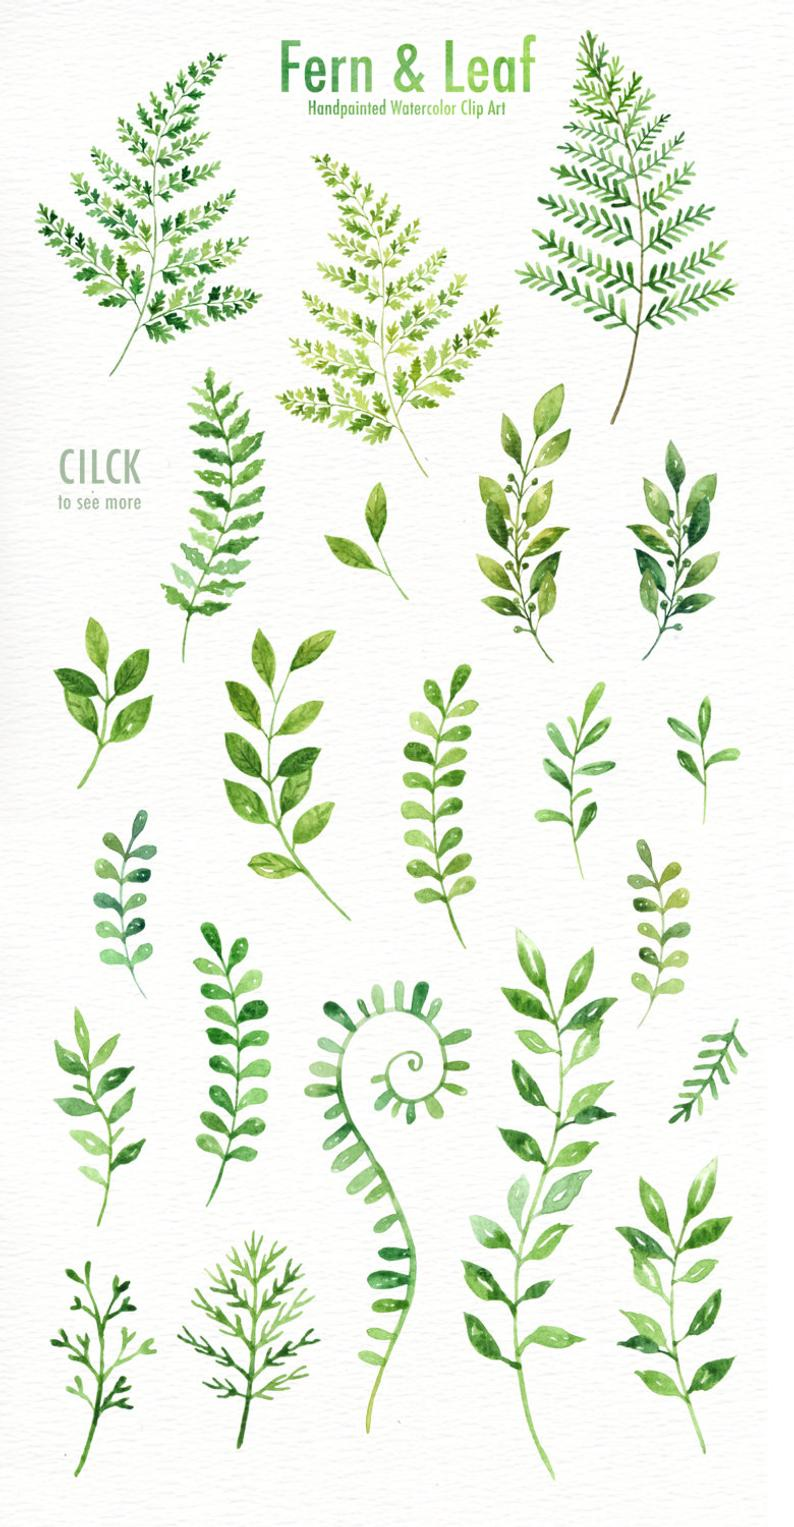 Fern & Leaf Watercolor clipart,  Forest Leaves Cli